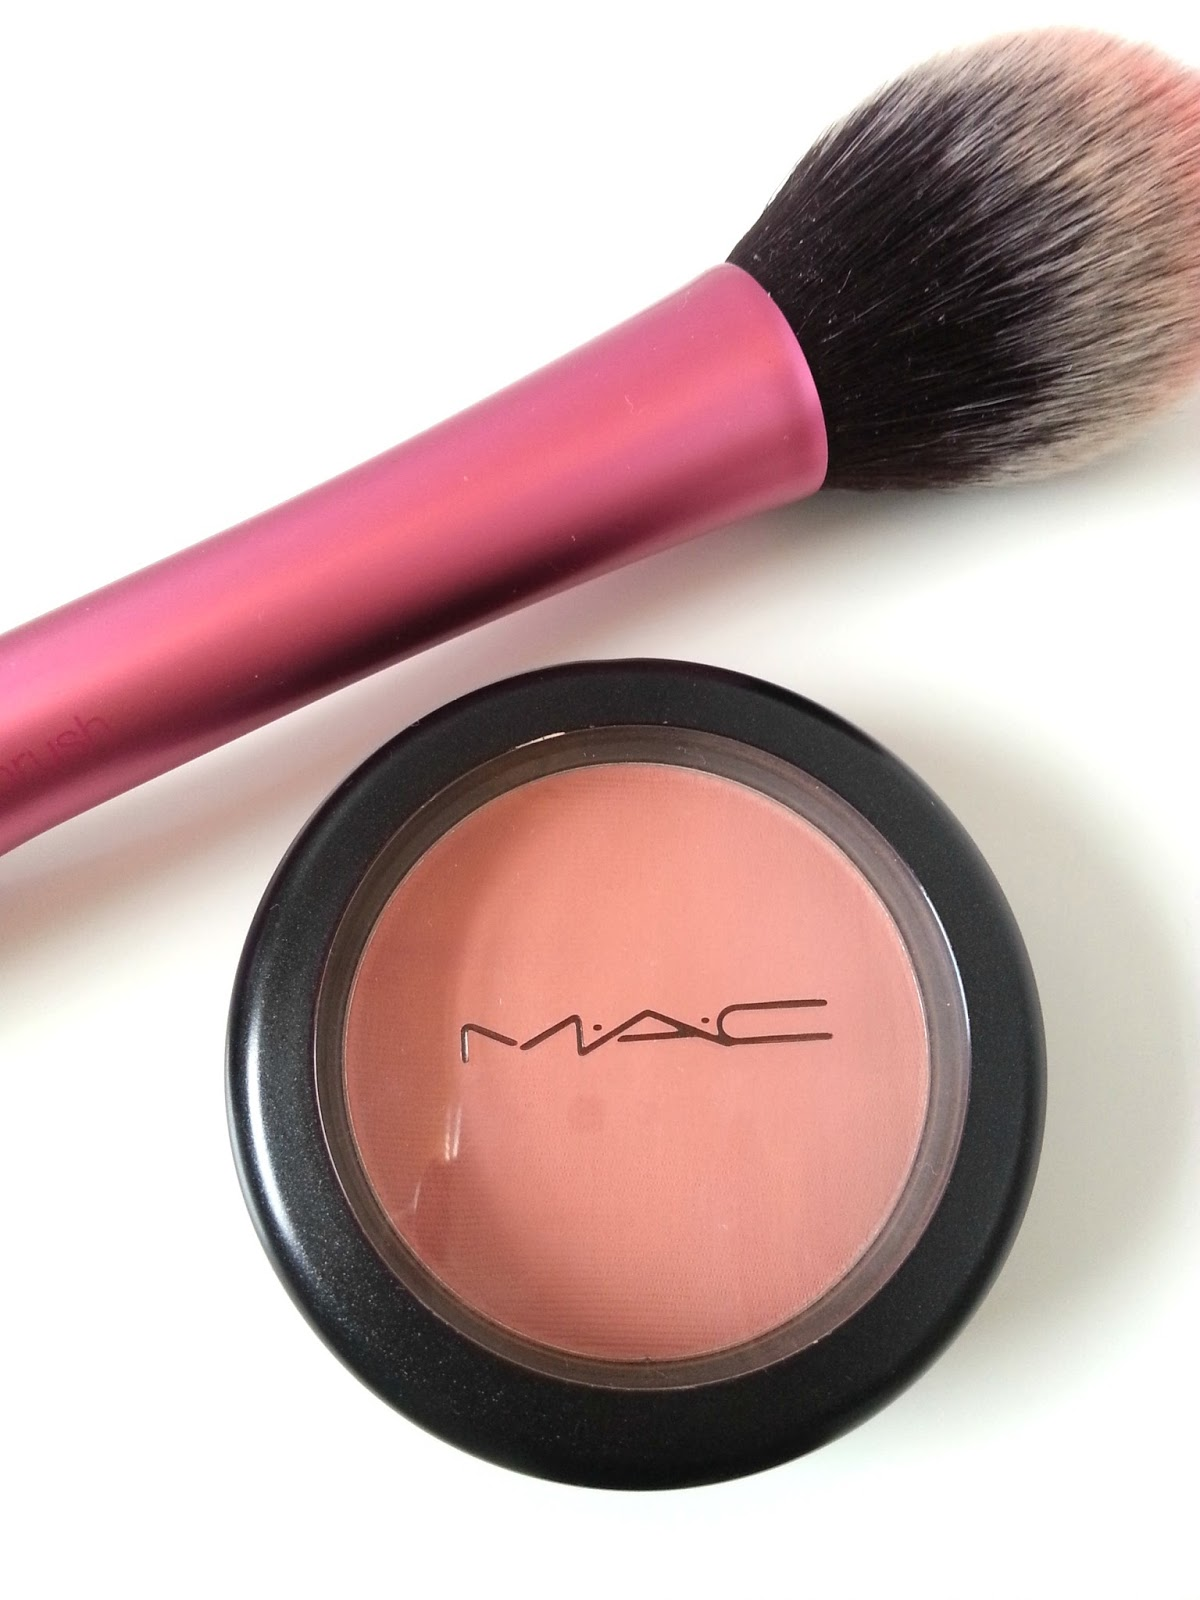 MAC Blush in 'Melba'